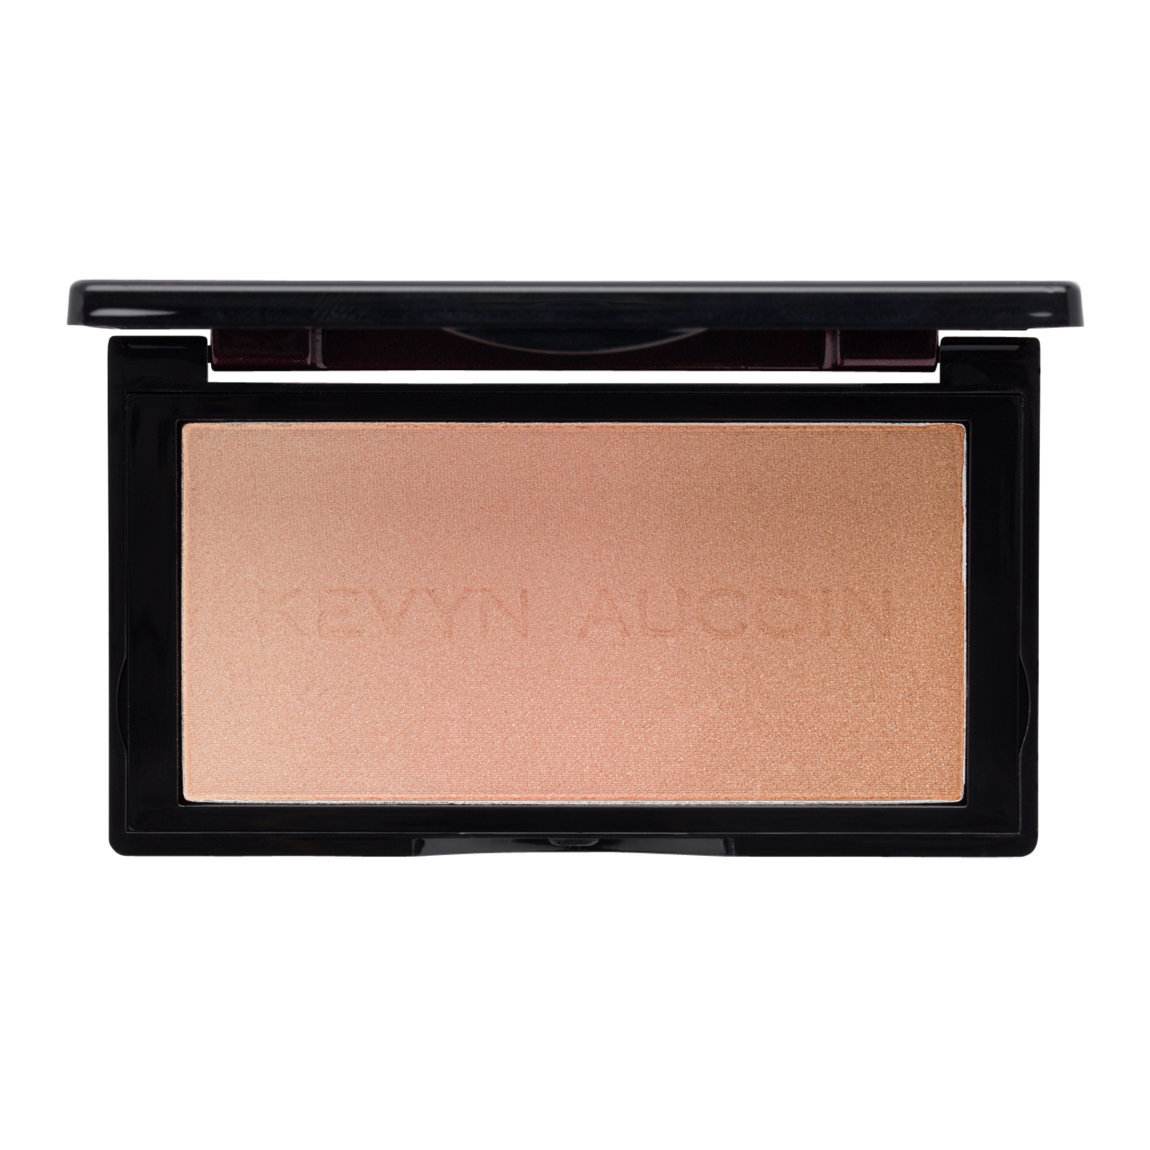 Kevyn Aucoin The Neo-Highlighter 0.20 oz product smear.